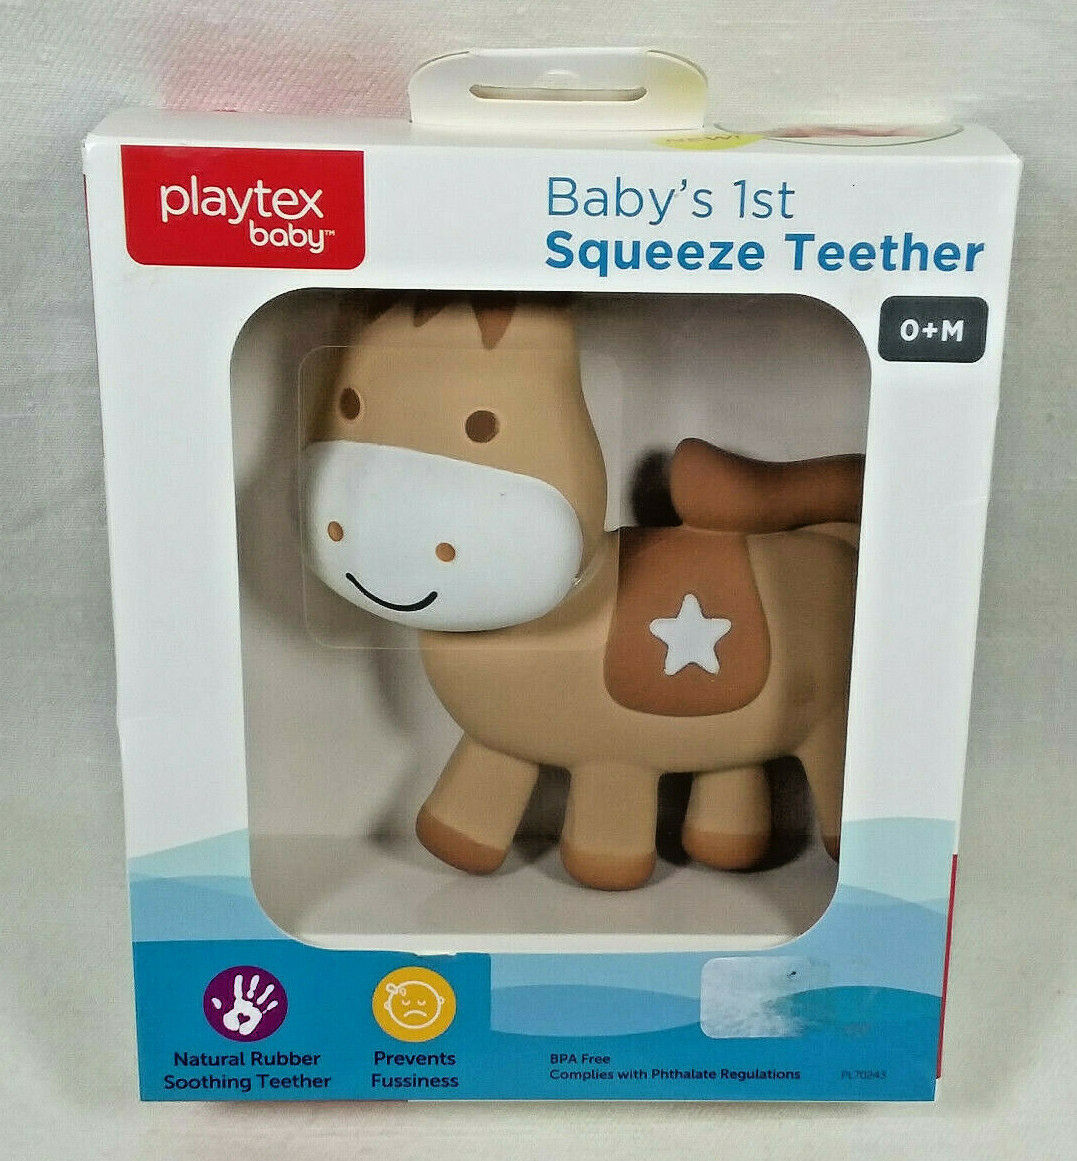 Playtex Baby Baby's 1st Squeeze Teether Teething Toy Soft Na